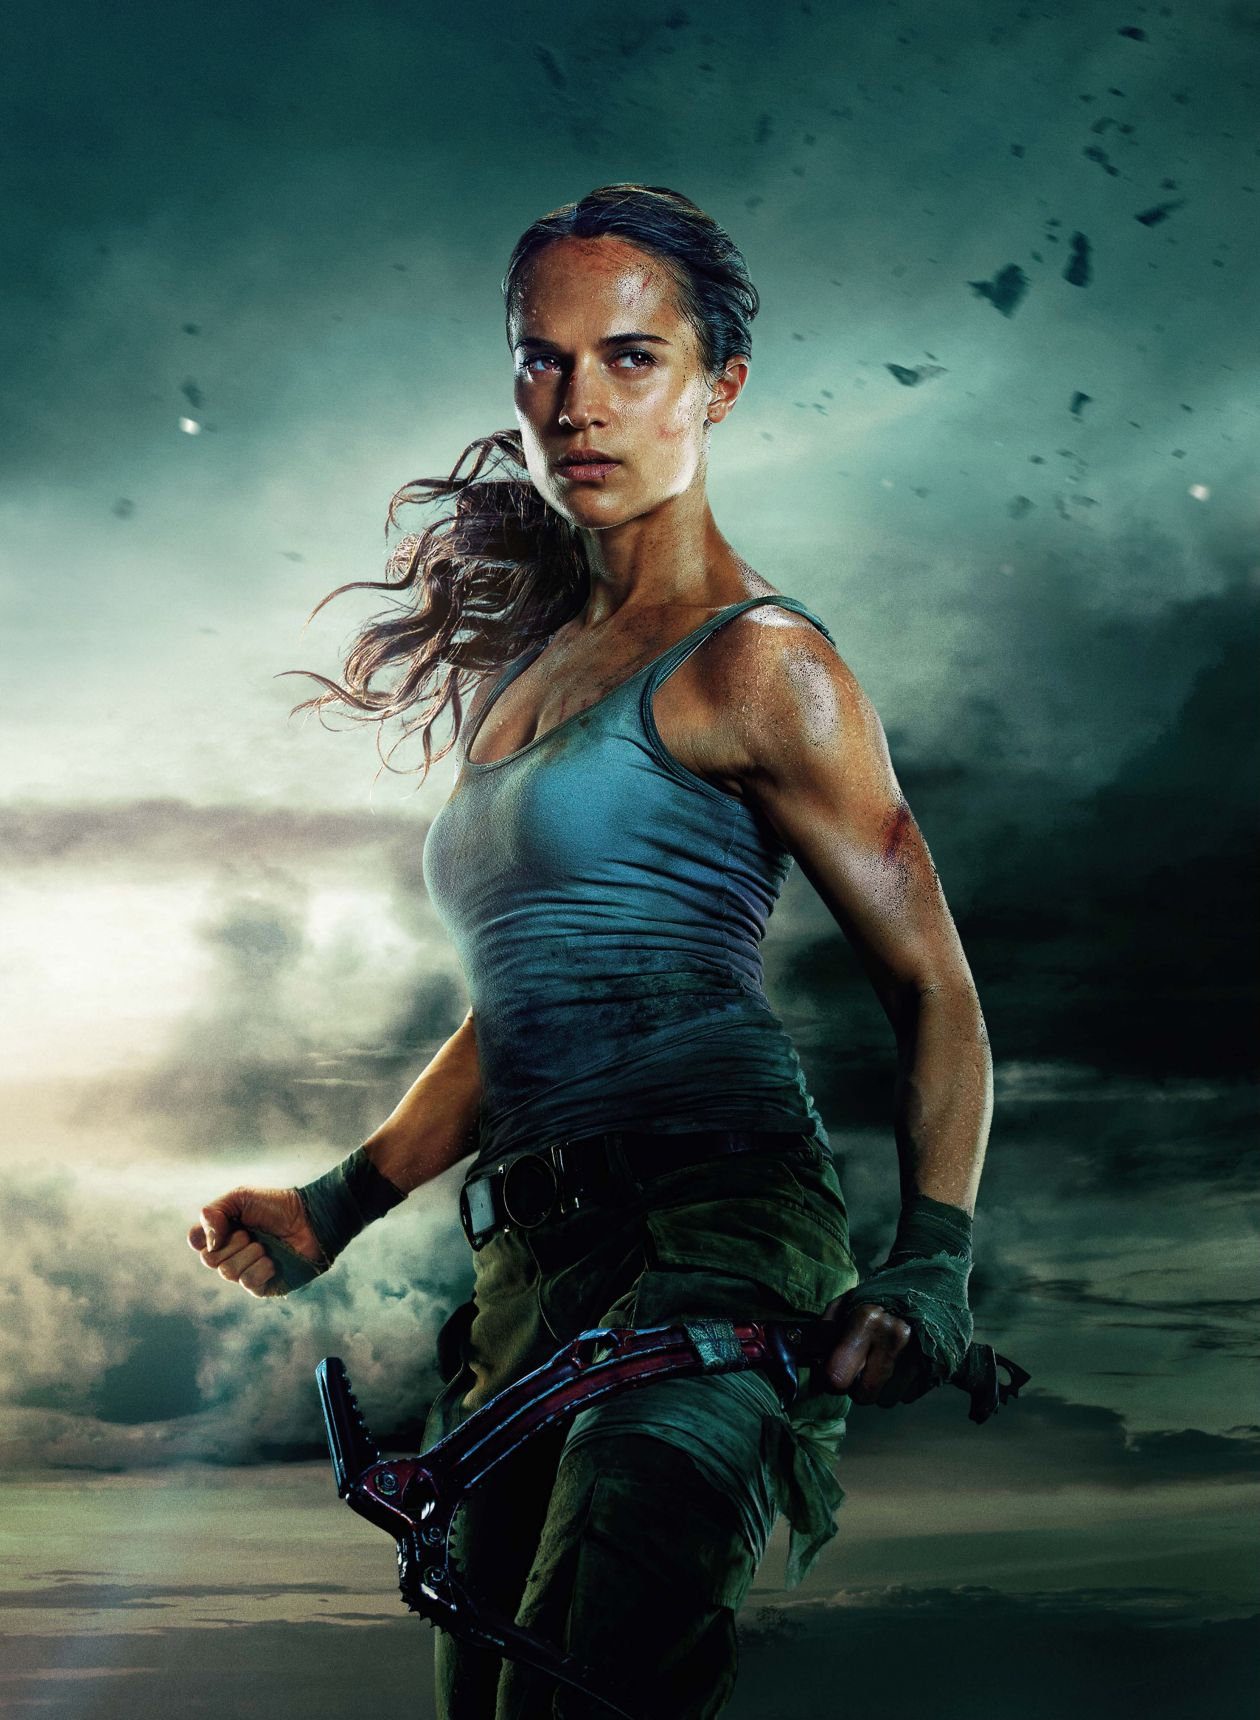 Alicia Vikander actress / Lara Croft / Tomb Raider 2018 Movie Teaser Poster / Affiche Teaser film